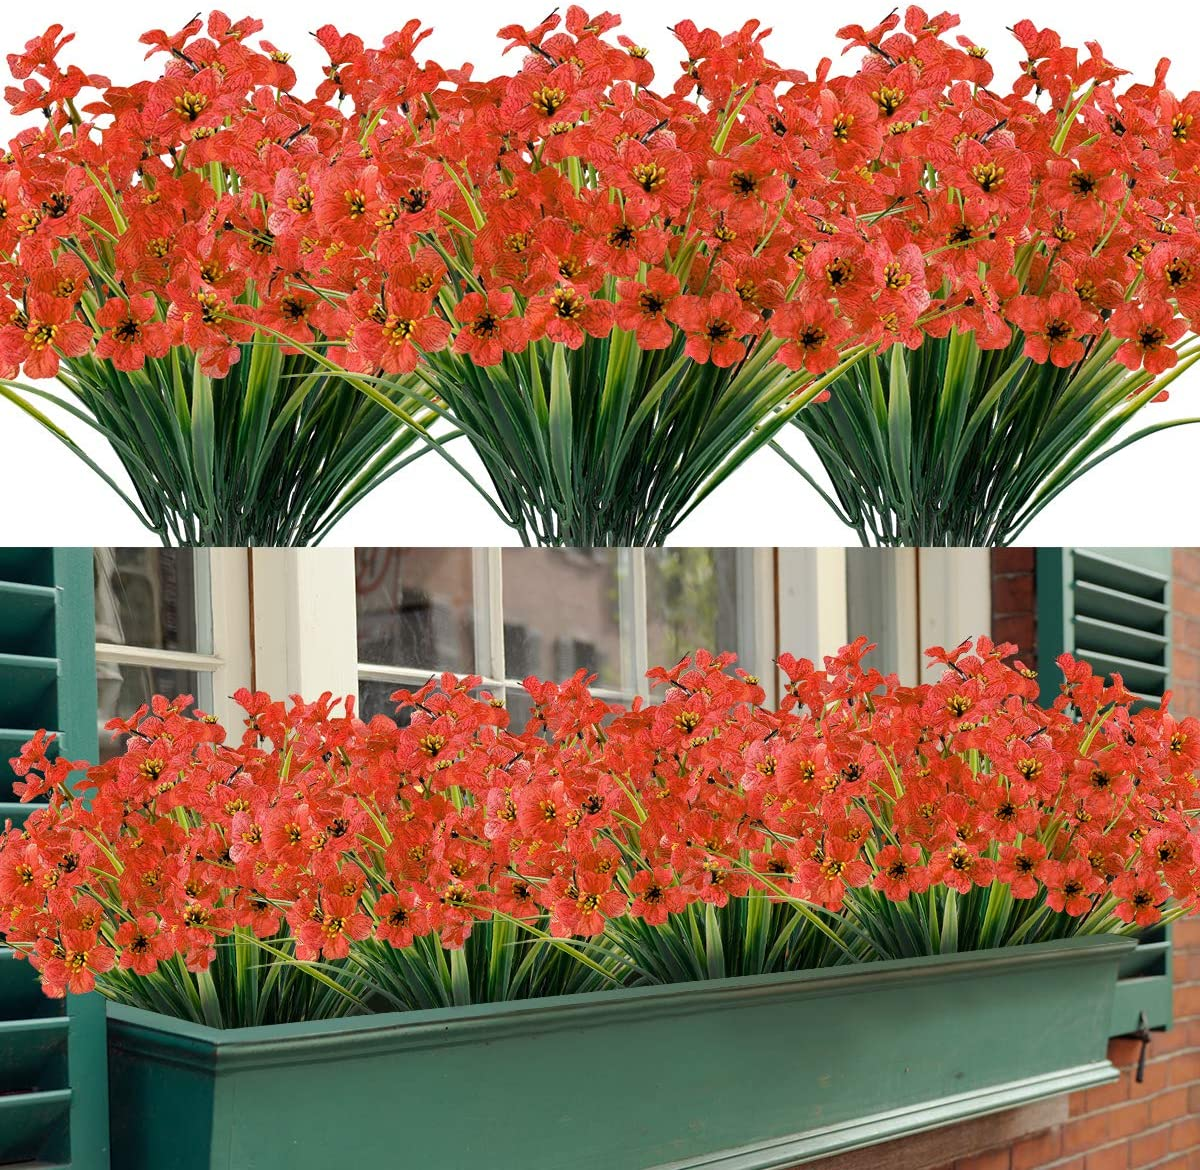 20 Bundles Artificial Ranking integrated 1st place Outdoor UV 5 ☆ very popular Fake Flowers Resistant